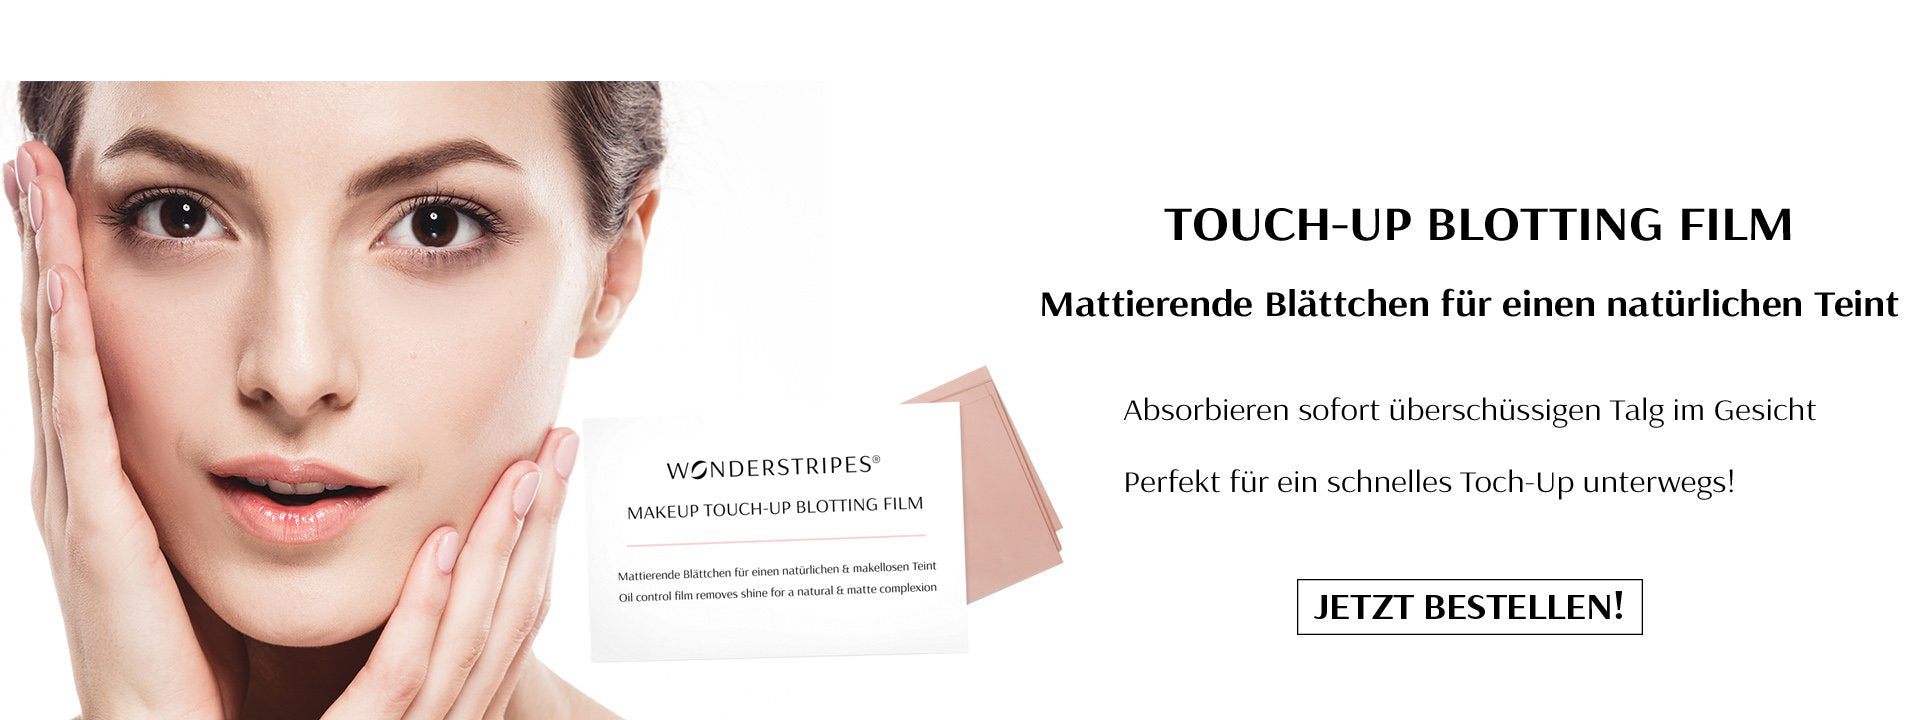 TOUCH-UP BLOTTING FILM